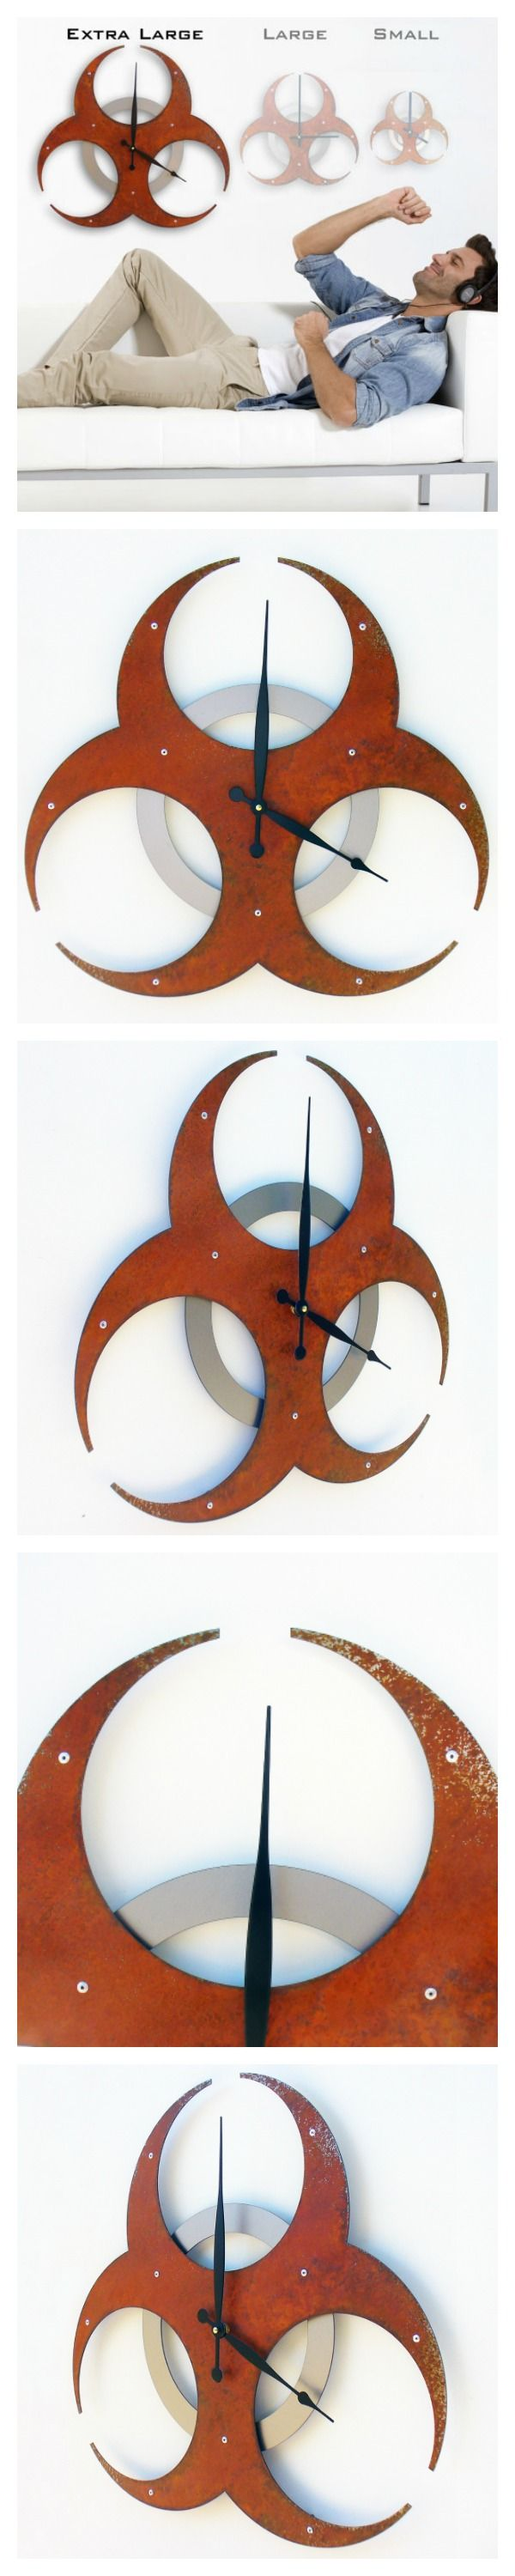 Best 25 extra large wall clock ideas on pinterest designer wall do you need a large clock for your home then you need to check out this biohazard rusted extra large wall clock modern wall clock industrial wall clock amipublicfo Gallery